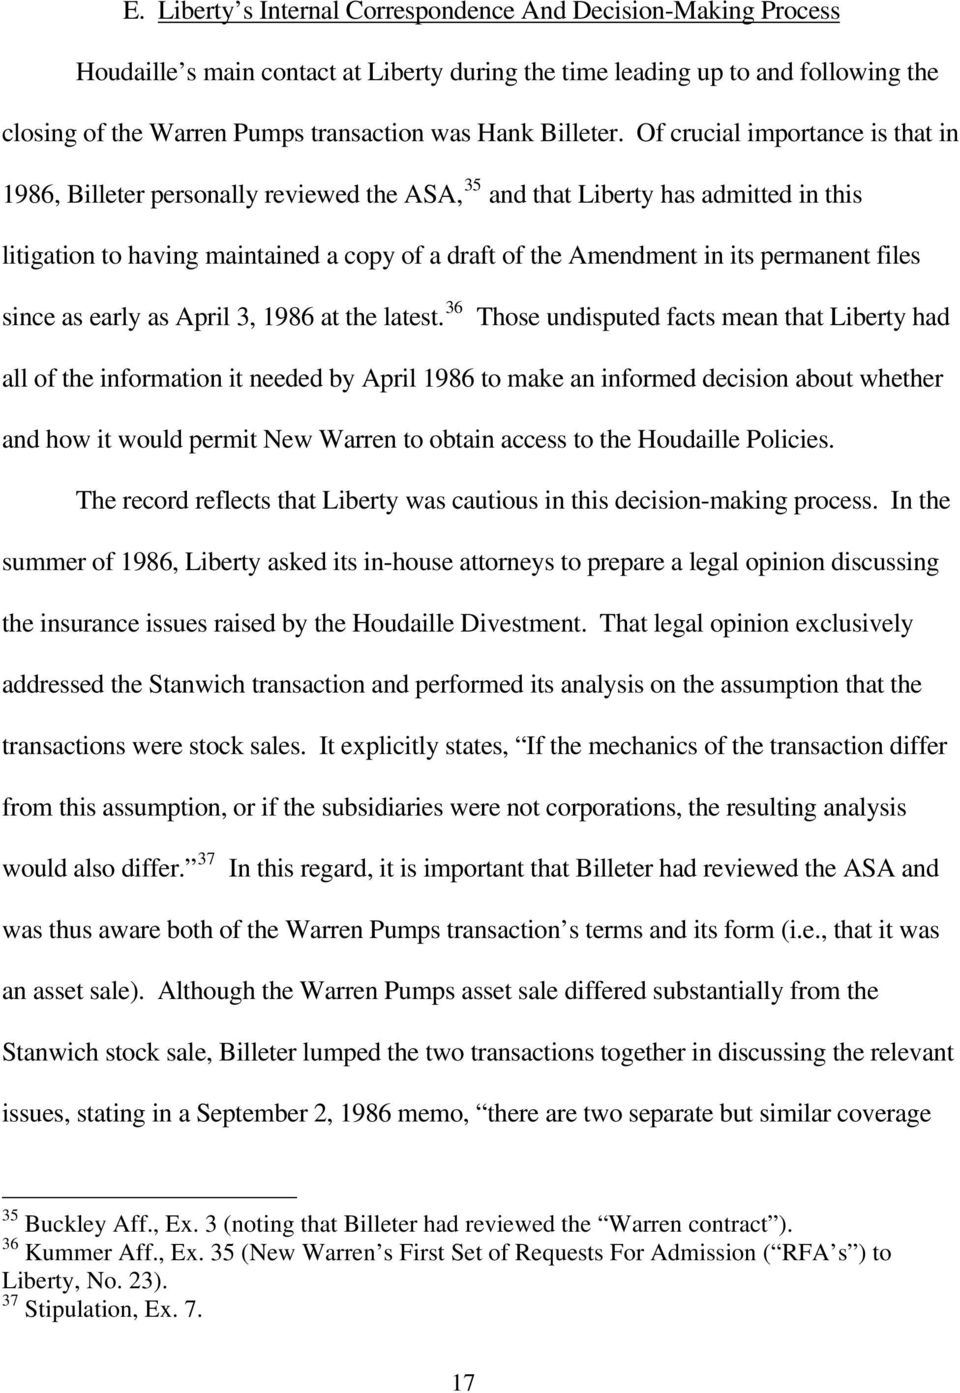 Of crucial importance is that in 1986, Billeter personally reviewed the ASA, 35 and that Liberty has admitted in this litigation to having maintained a copy of a draft of the Amendment in its